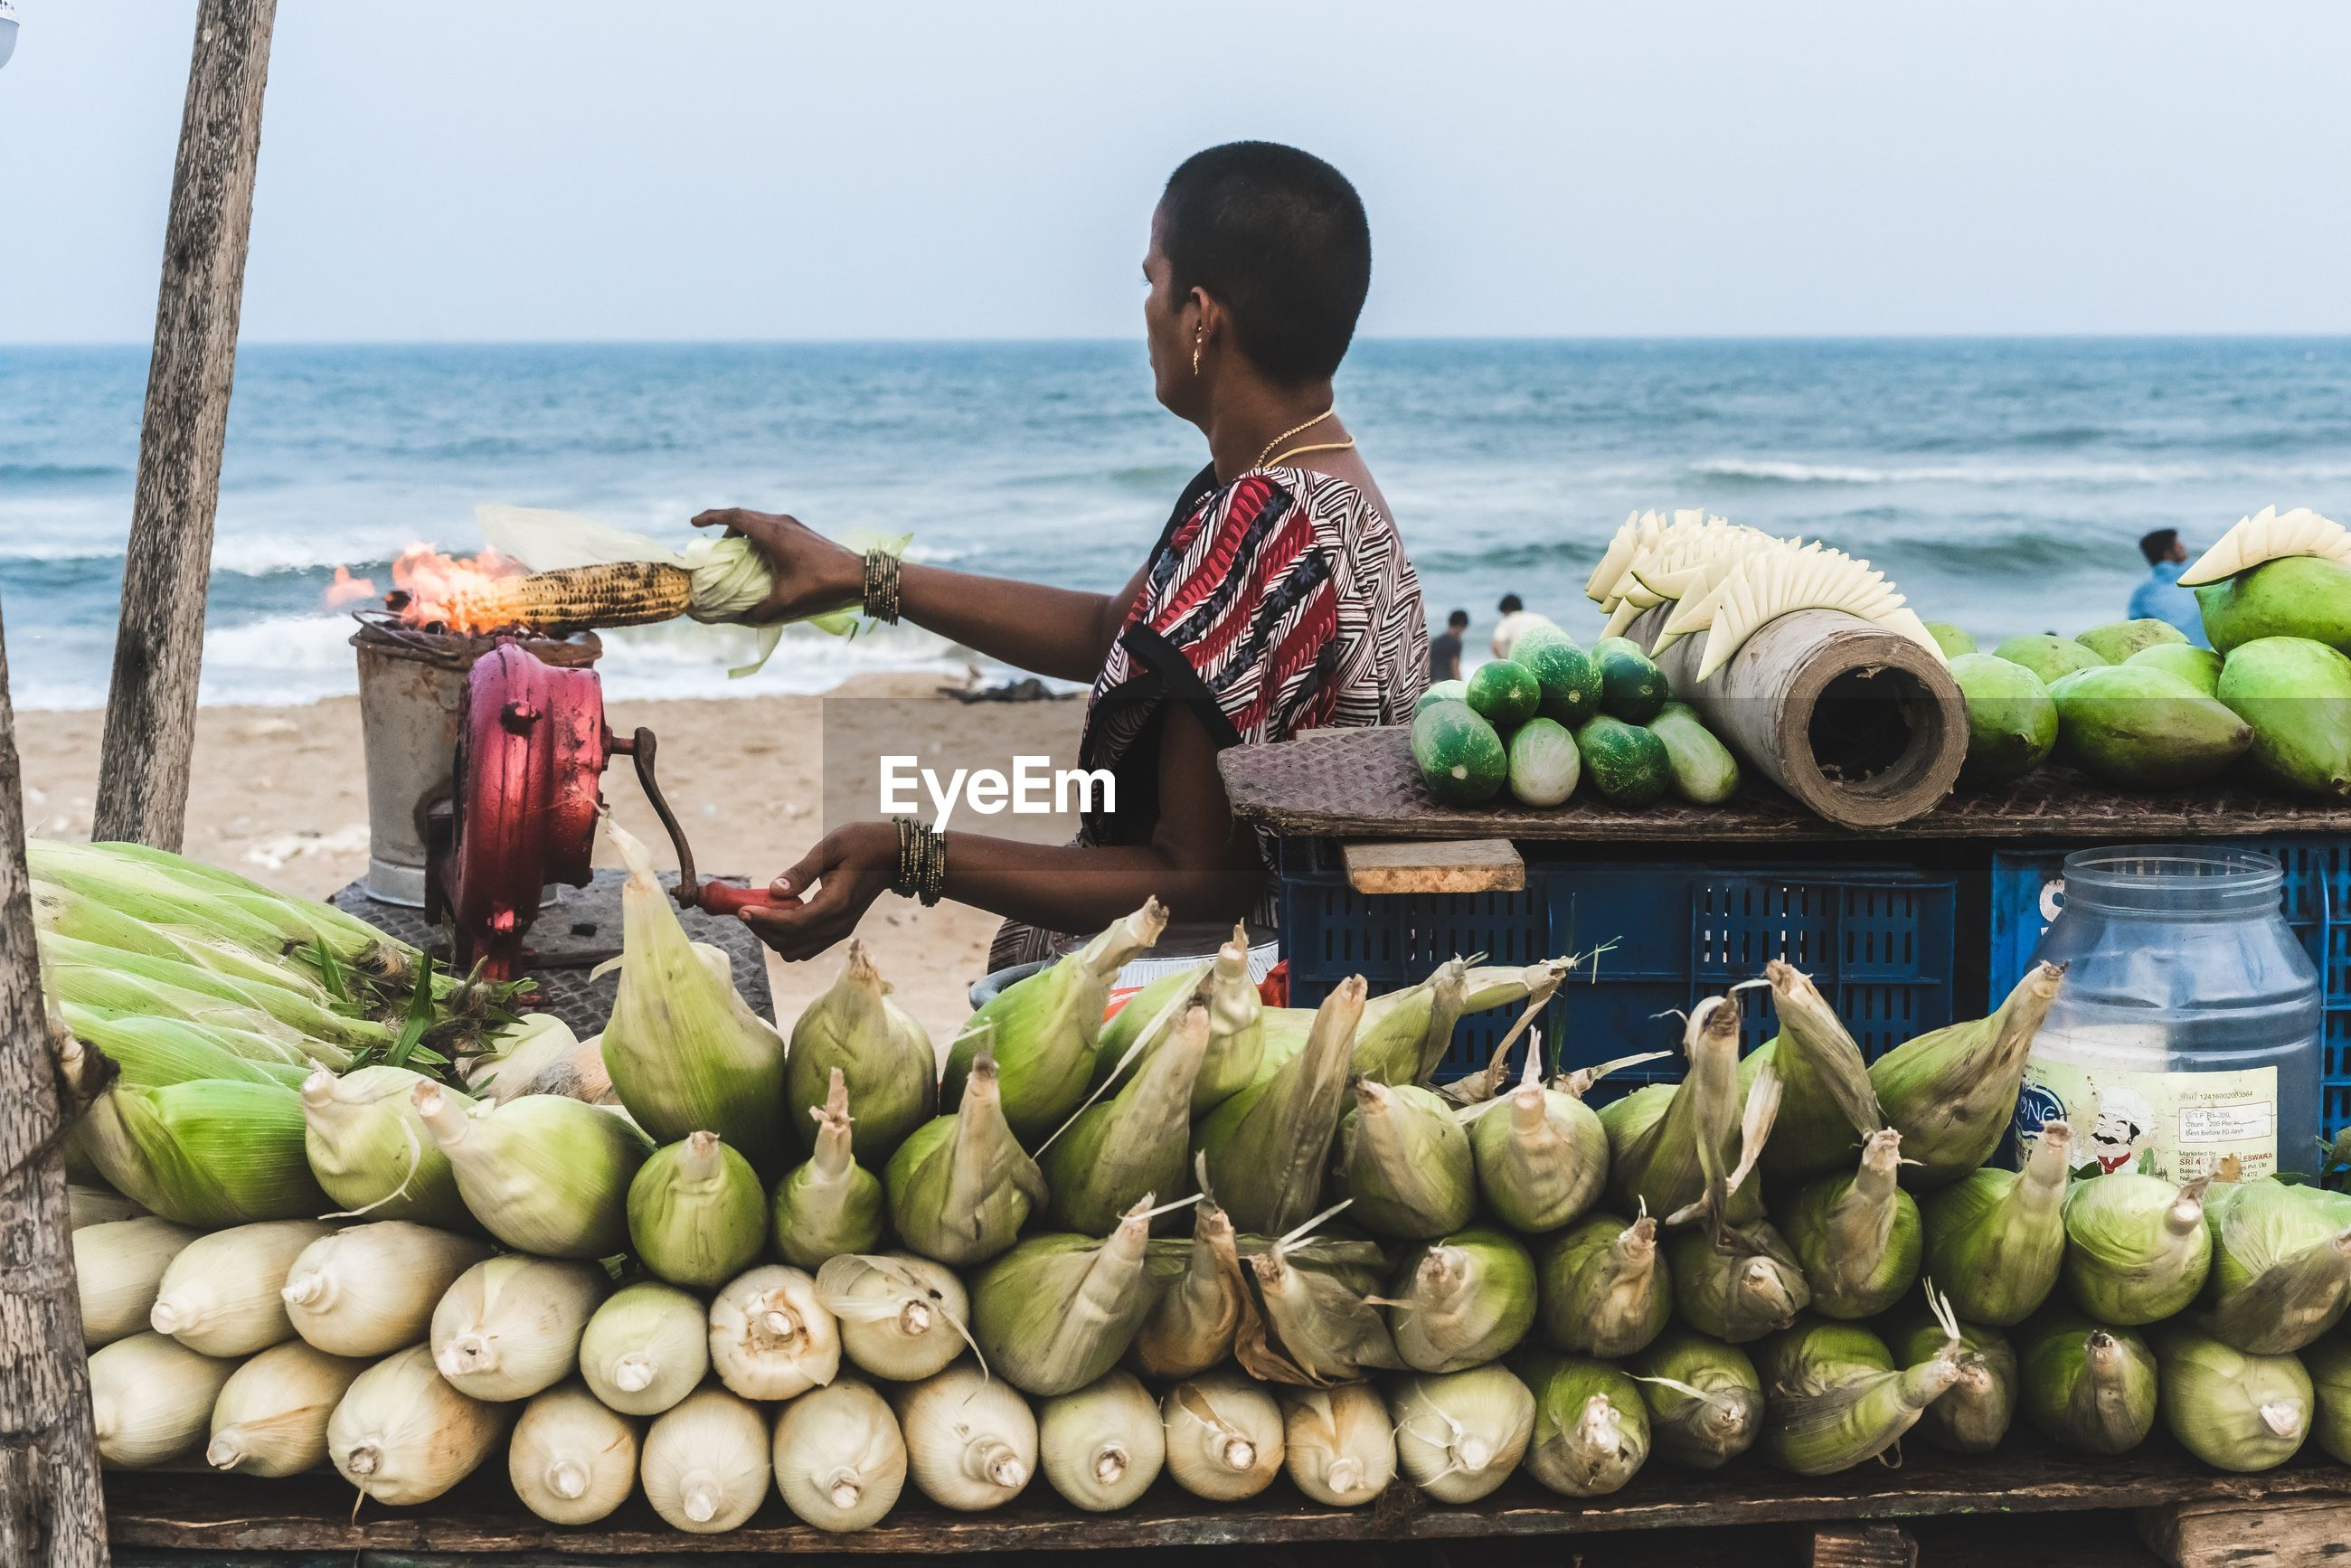 WOMAN AT MARKET STALL BY BEACH